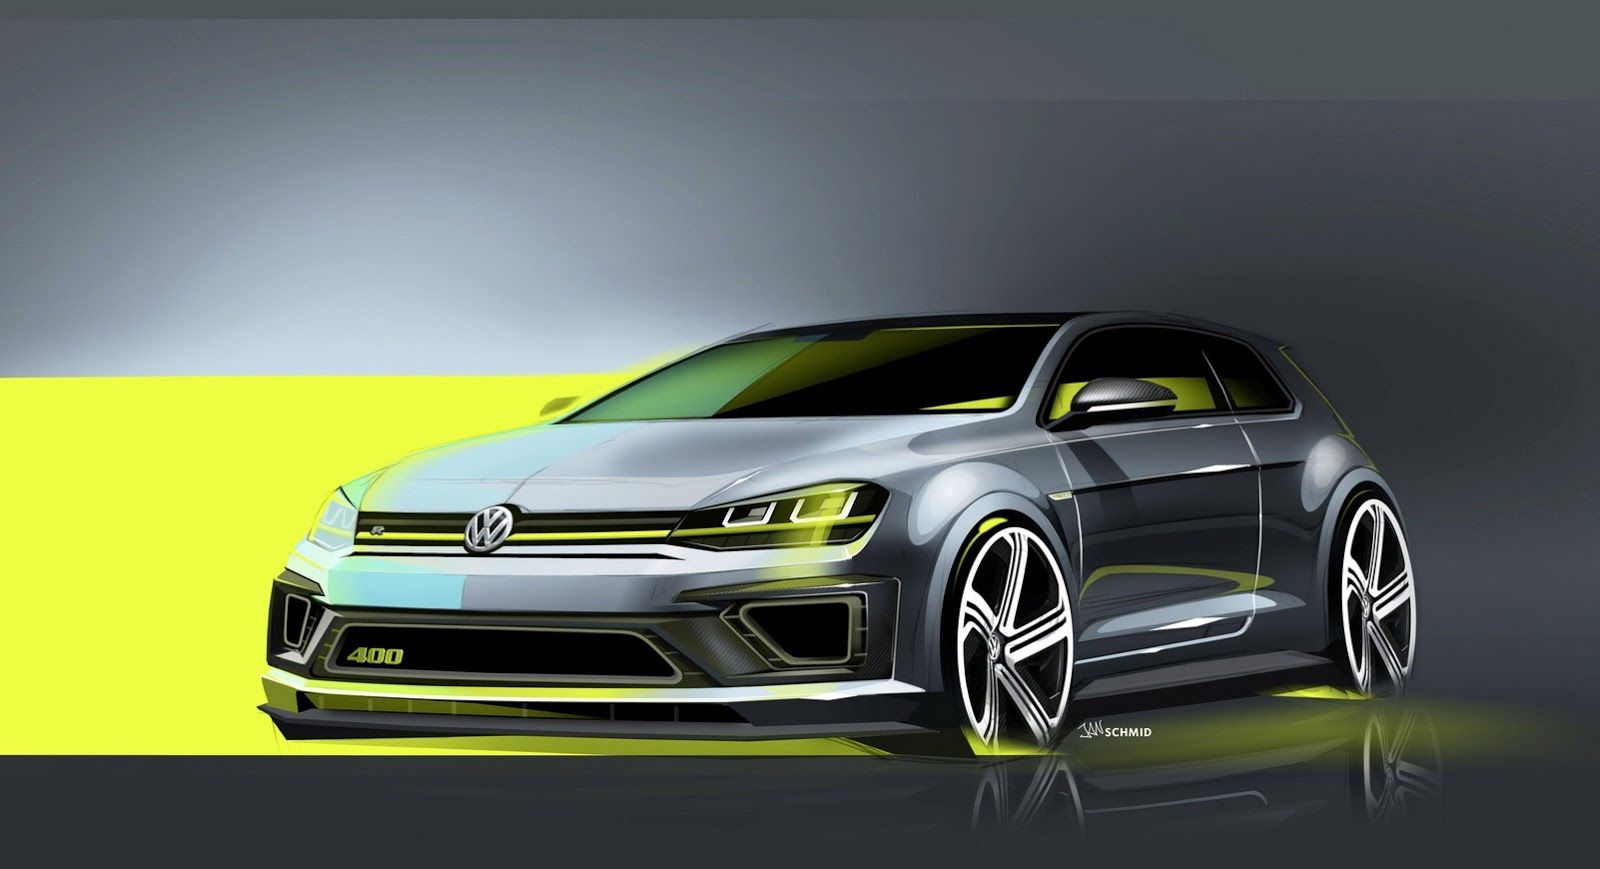 Vw S Super Golf R Concept Has 400 Horses And Goes Up To 175mph Or 282km H Carscoops Volkswagen Golf Volkswagen Golf R Volkswagen